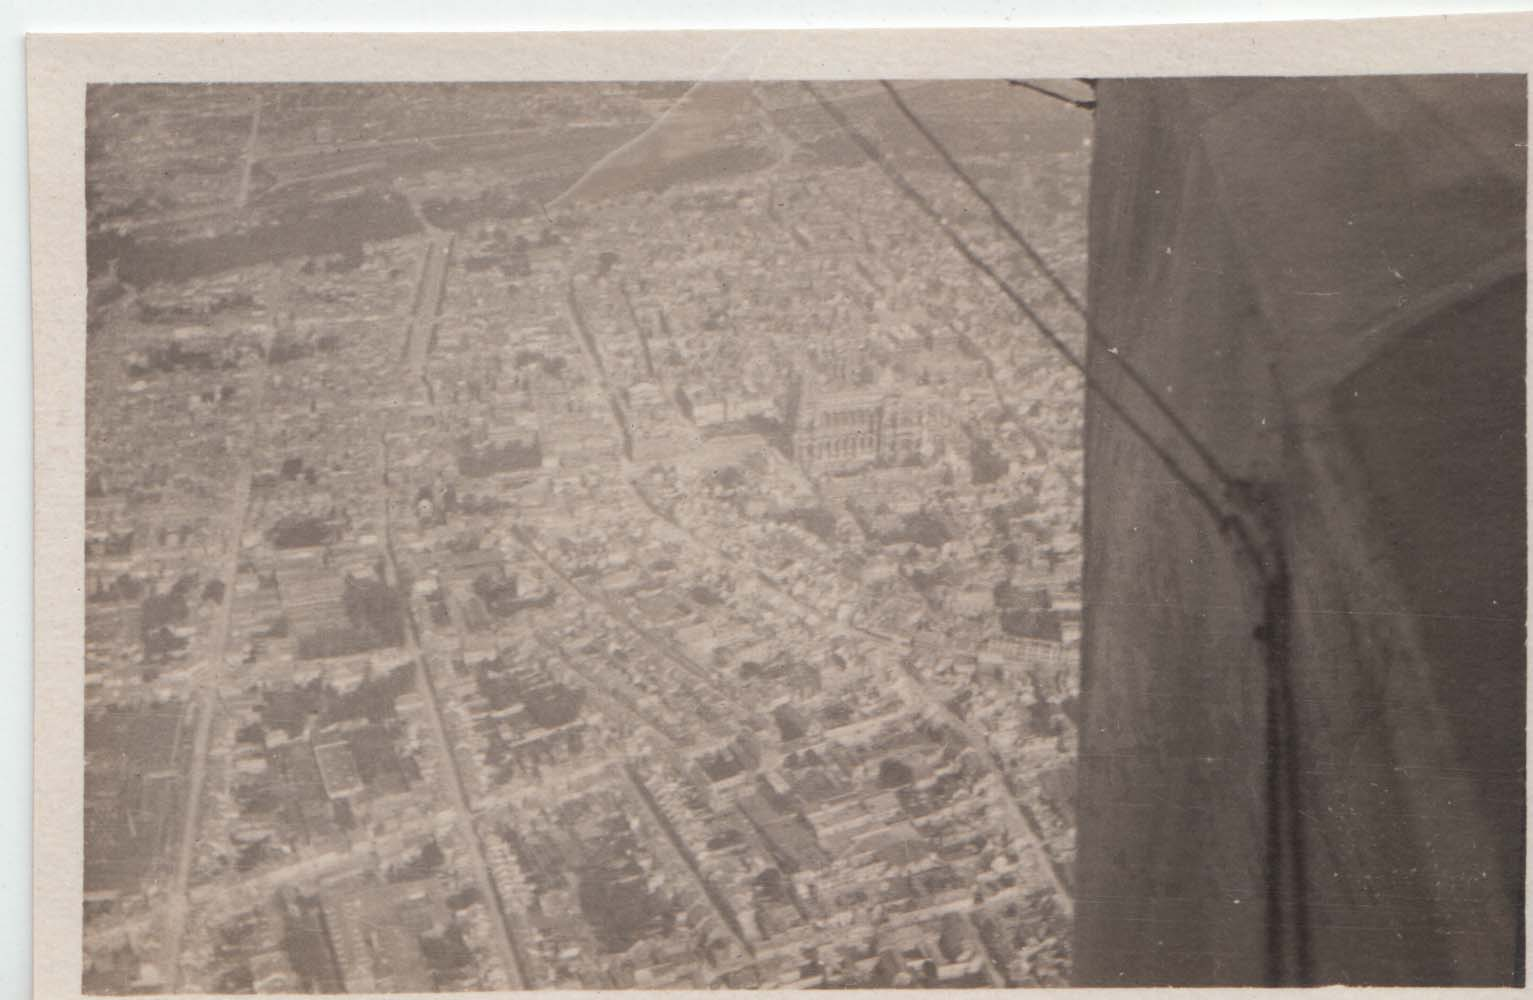 0423 Overview the city from plane